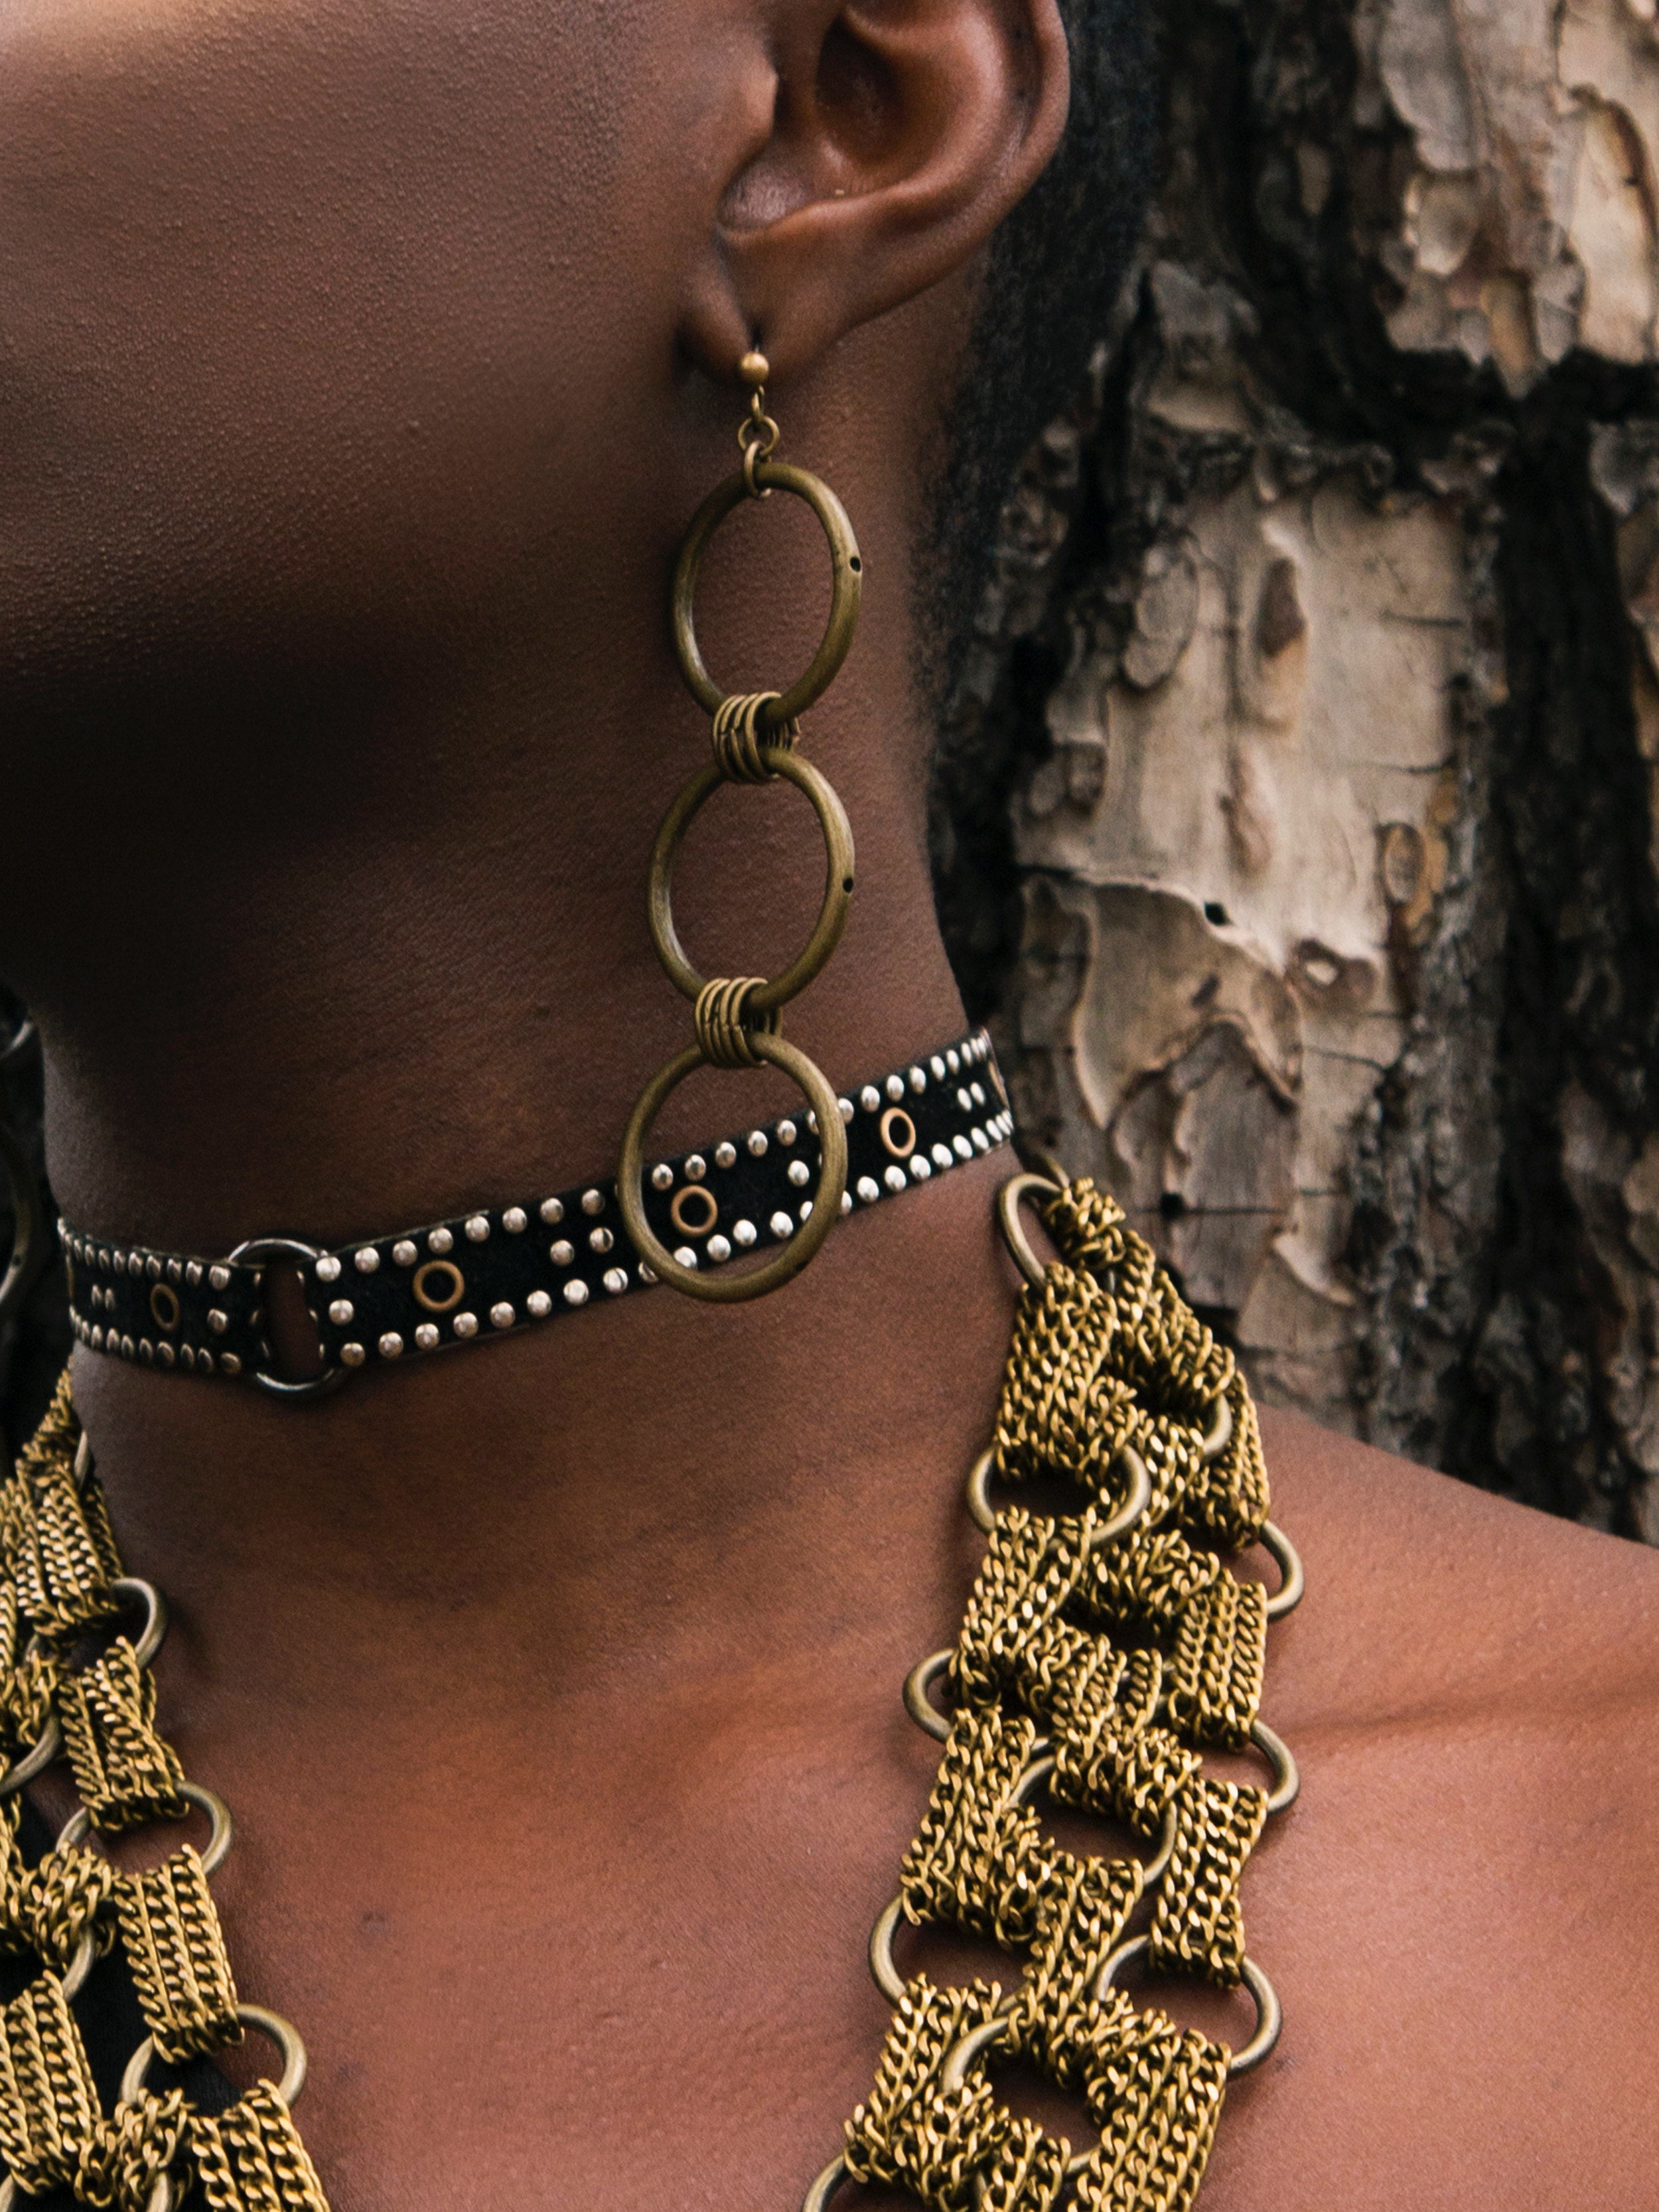 NOT ON YOUR TERMS - Highlighting the versatility and beauty of black womanhood.